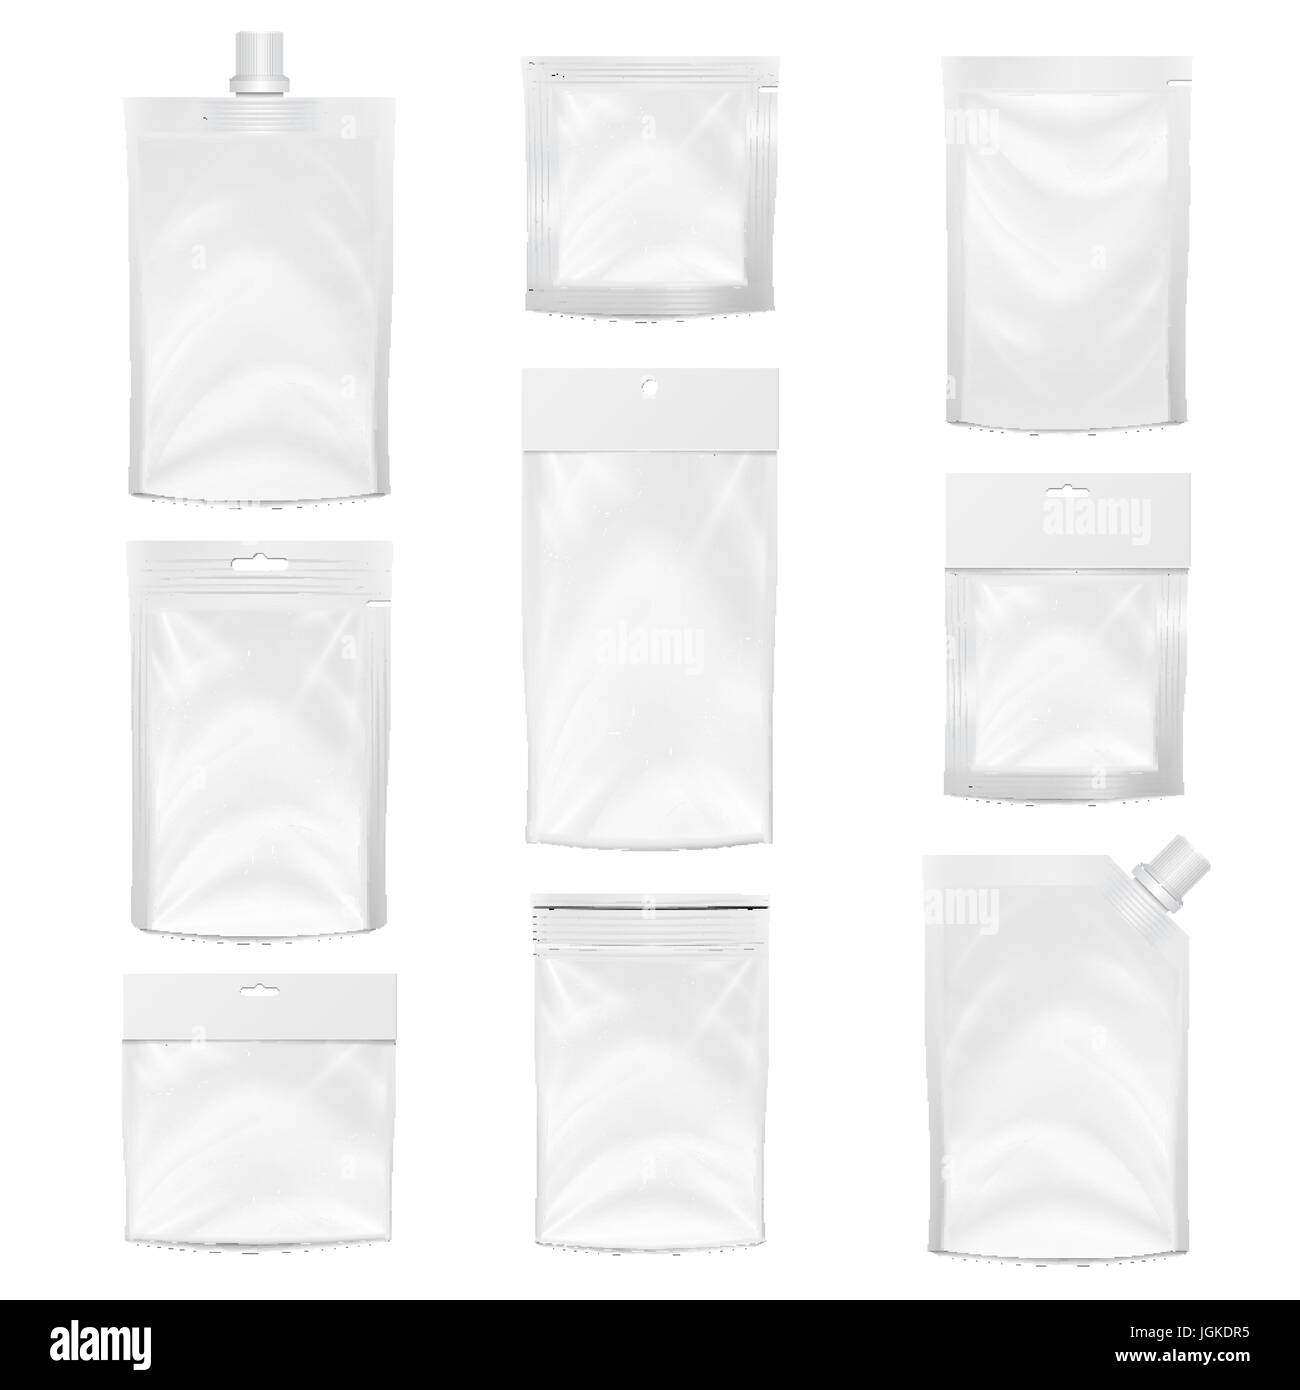 Ziploc Beutel Plastic Pocket Vector Blank Packing Design Realistic